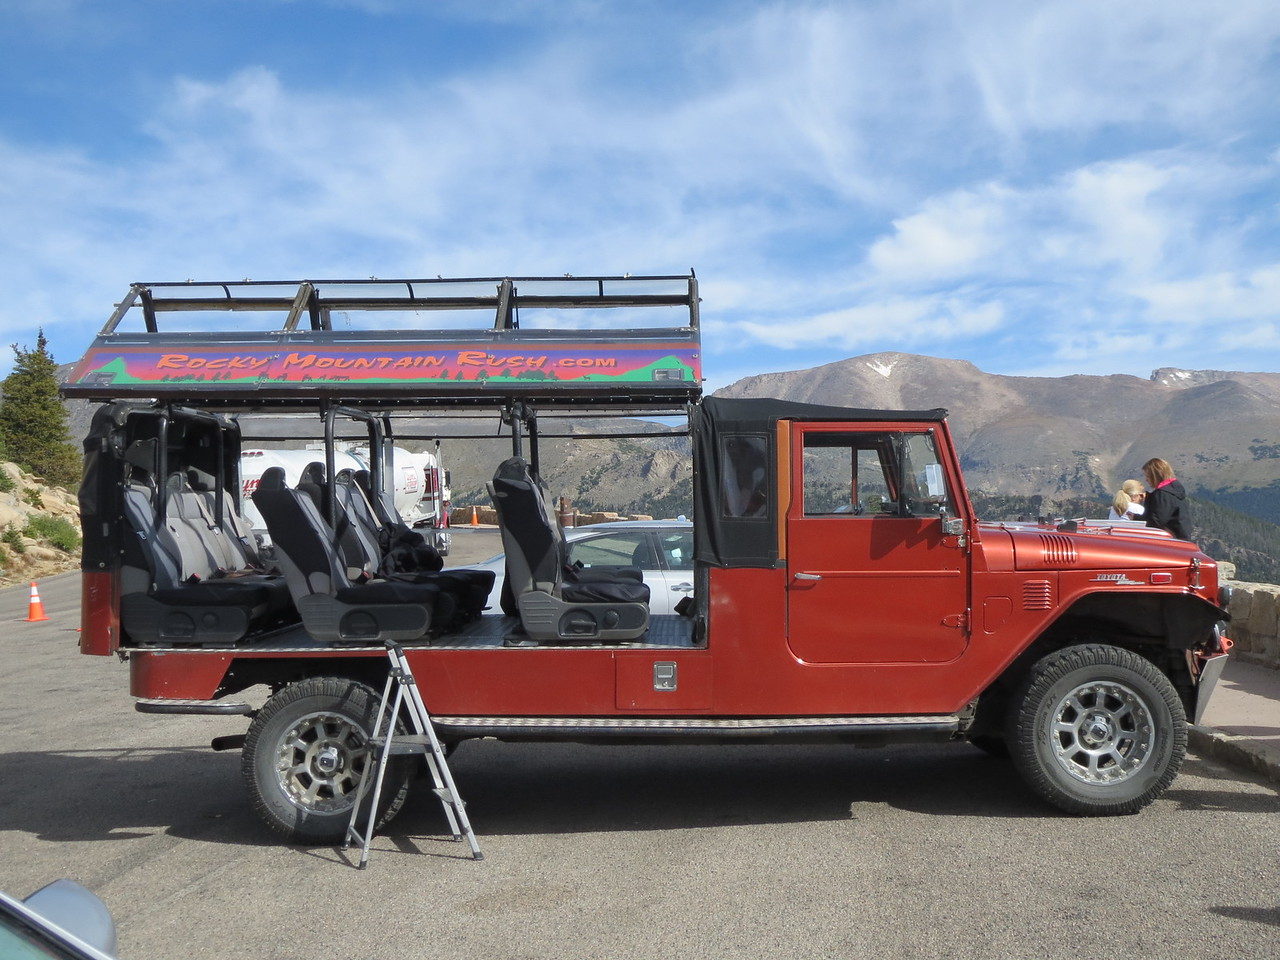 Day 3 (363 miles): Cool tour bus, old Land Cruiser front end on what Matt thinks is a new Toyota Tundra engine and chassis.